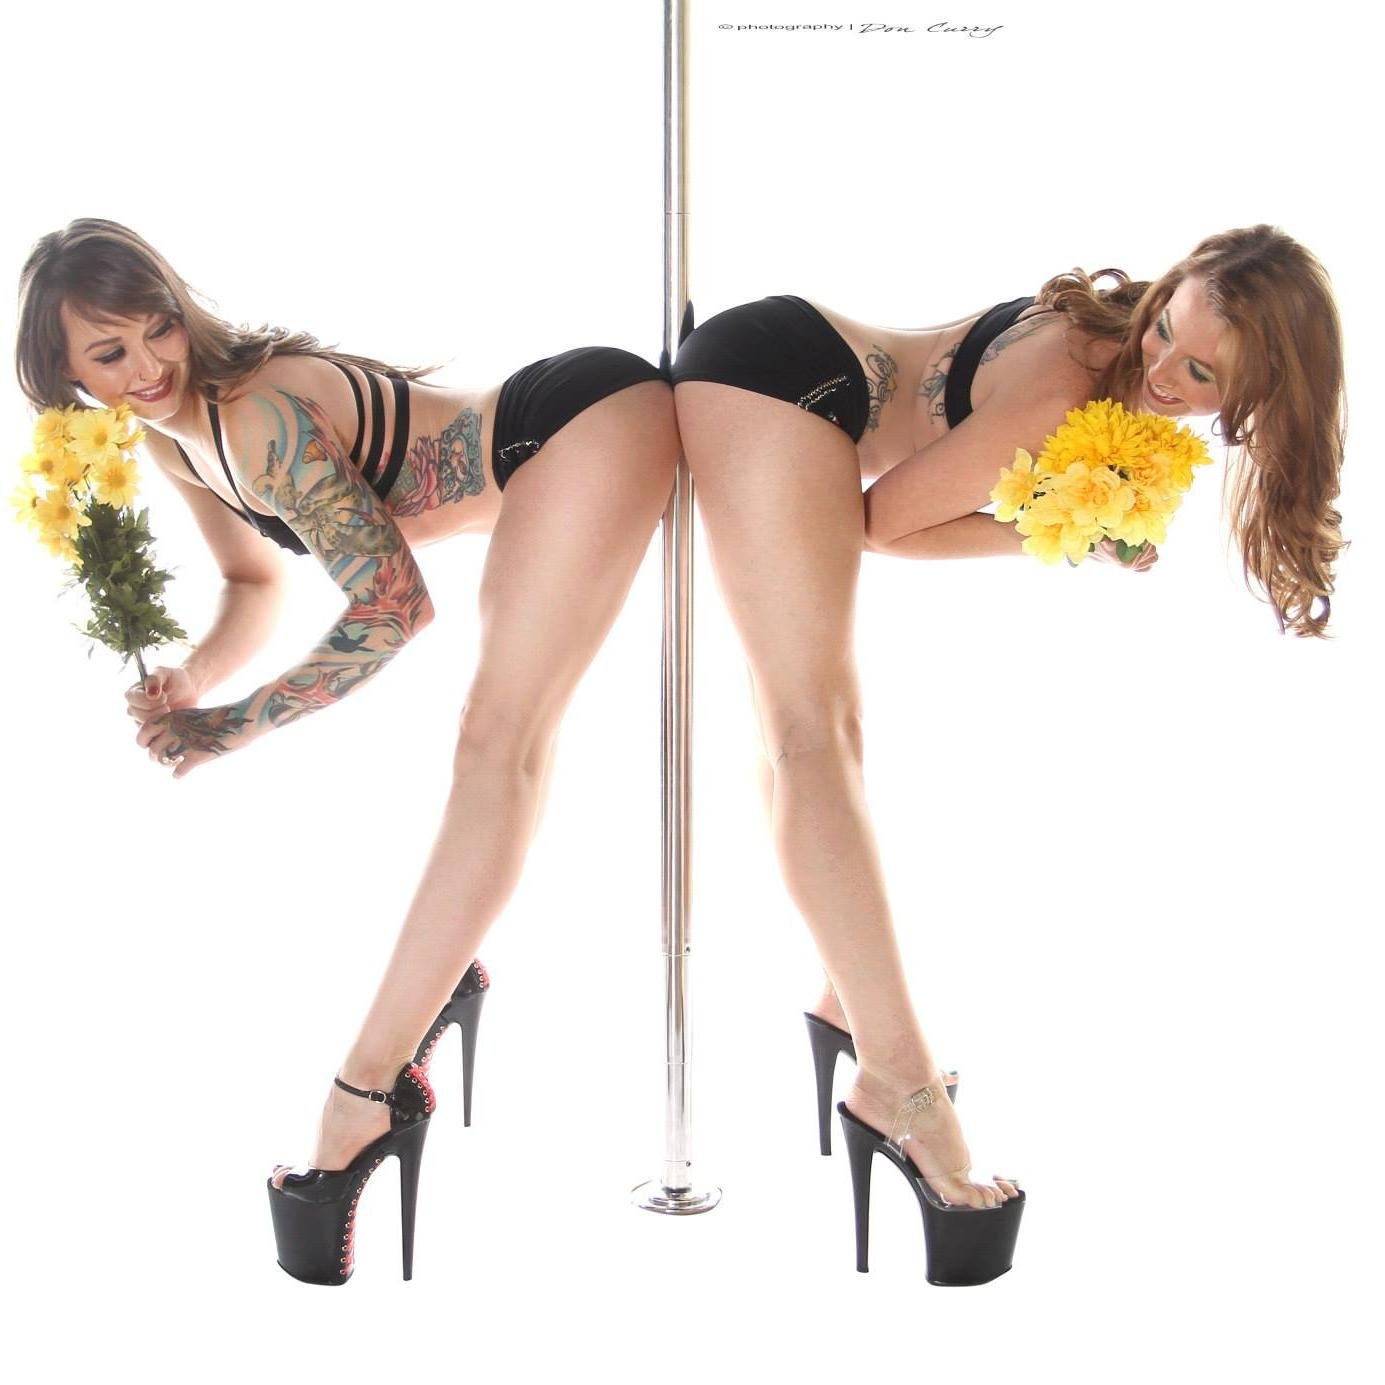 Image result for free blog pics of exotic dancers